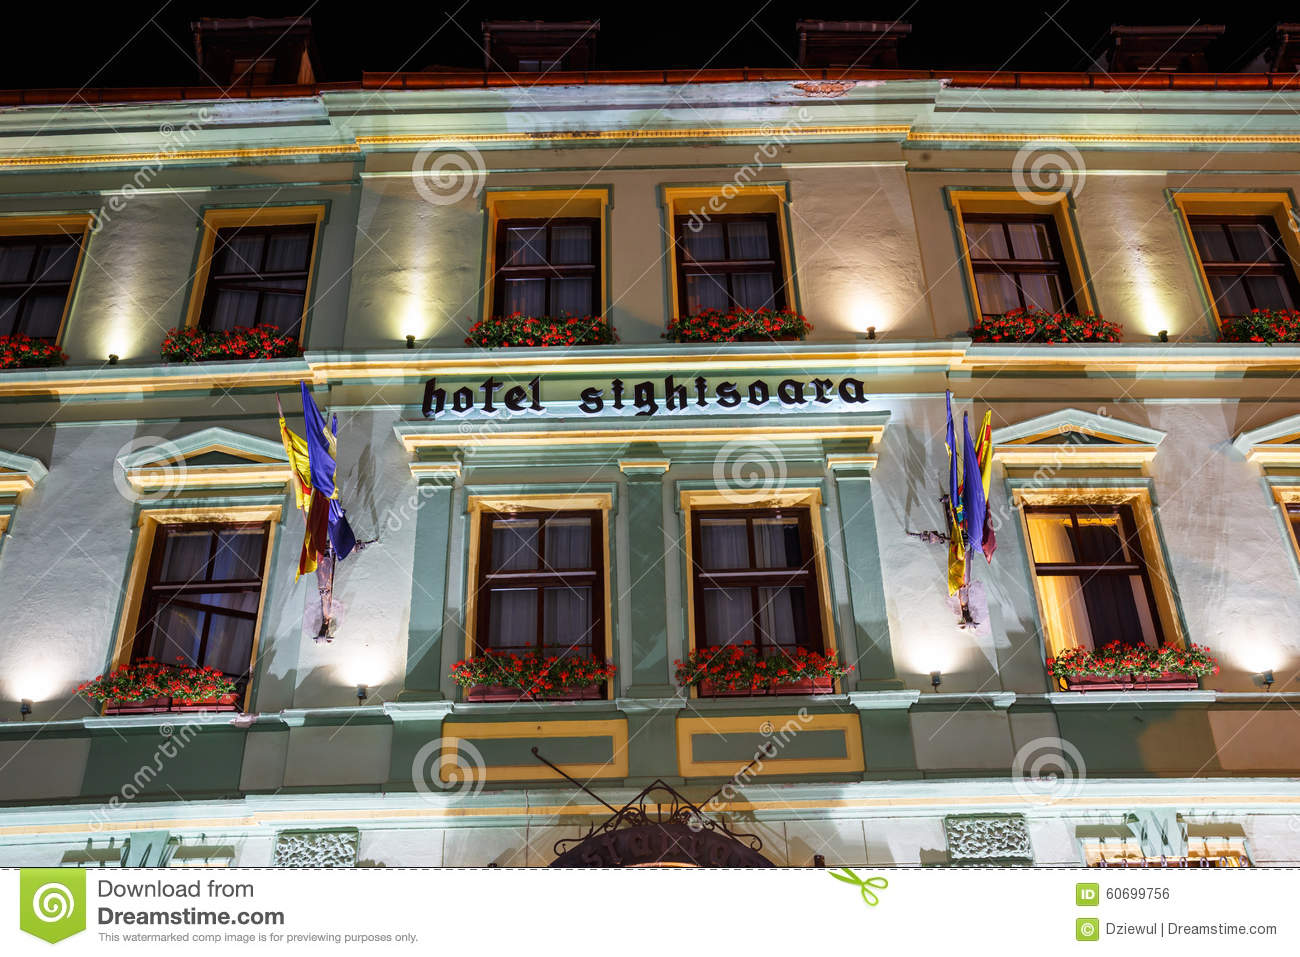 Night view of historic town Sighisoara on July 07, 2015. City in which was born Vlad Tepes, Dracula